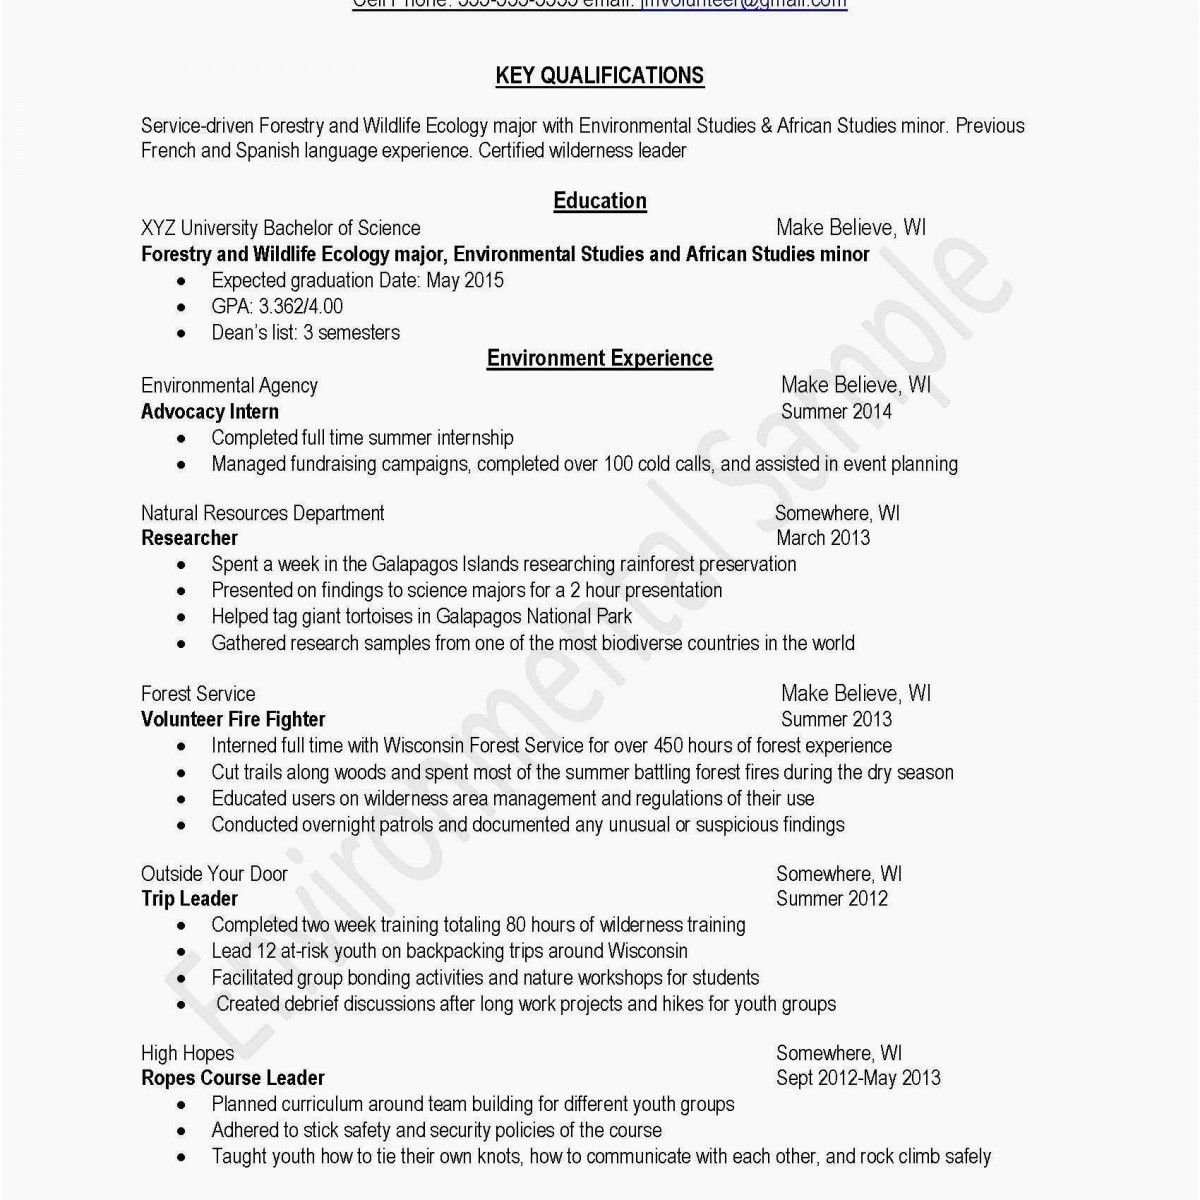 Research Resume Template - Research Resume Template